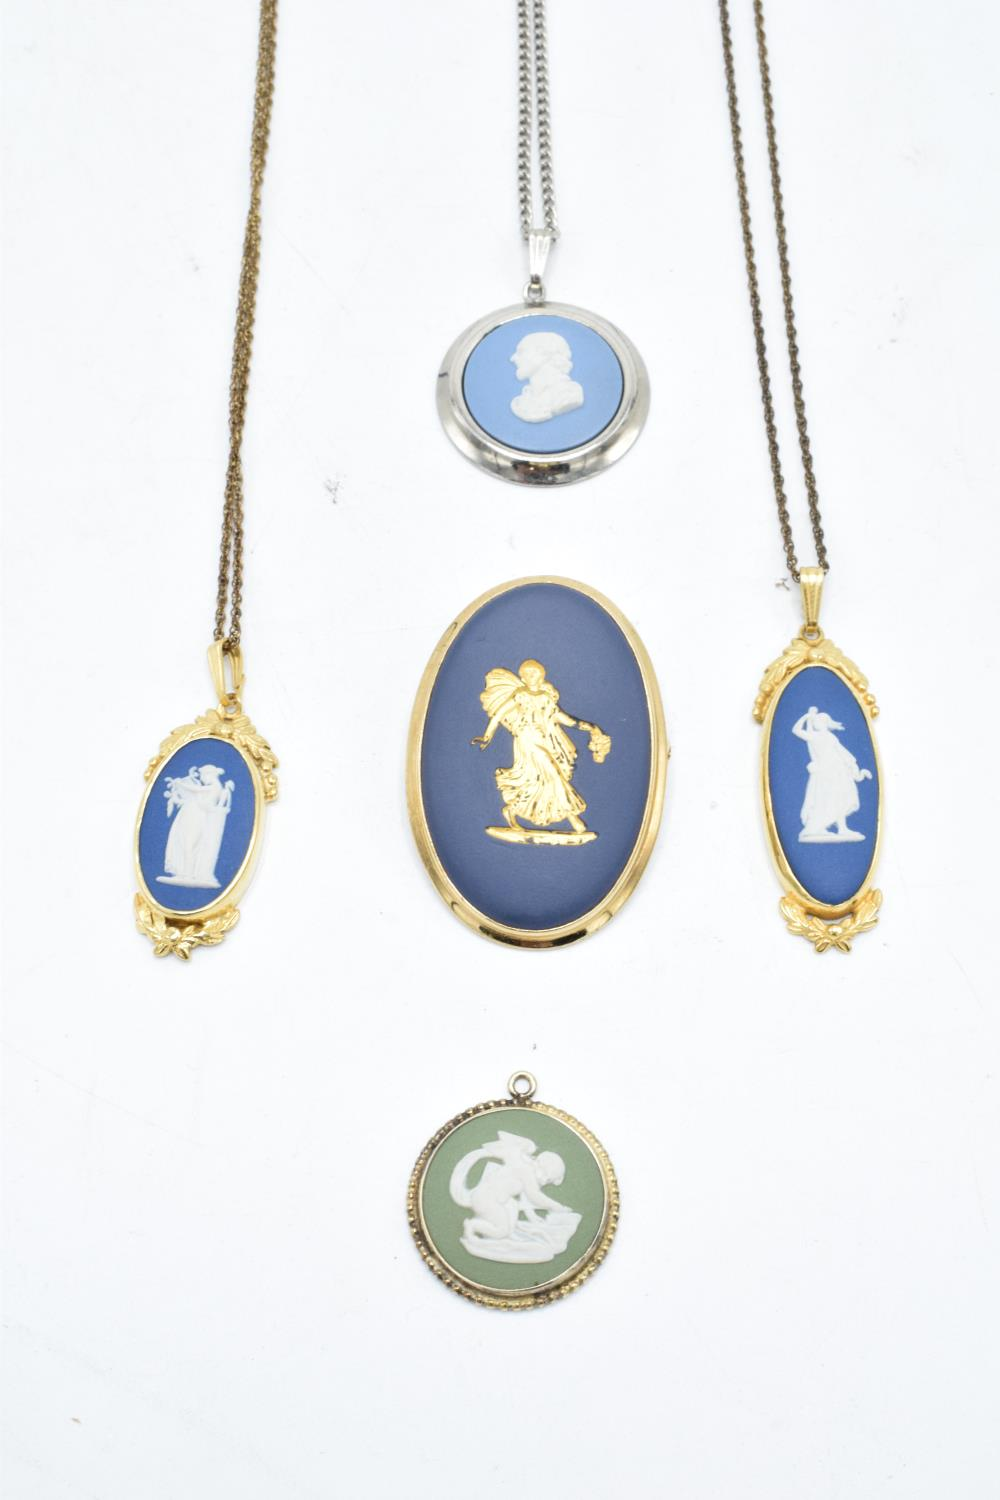 A collection of Wedgwood Jasperware jewellery to include necklaces and pendants with various